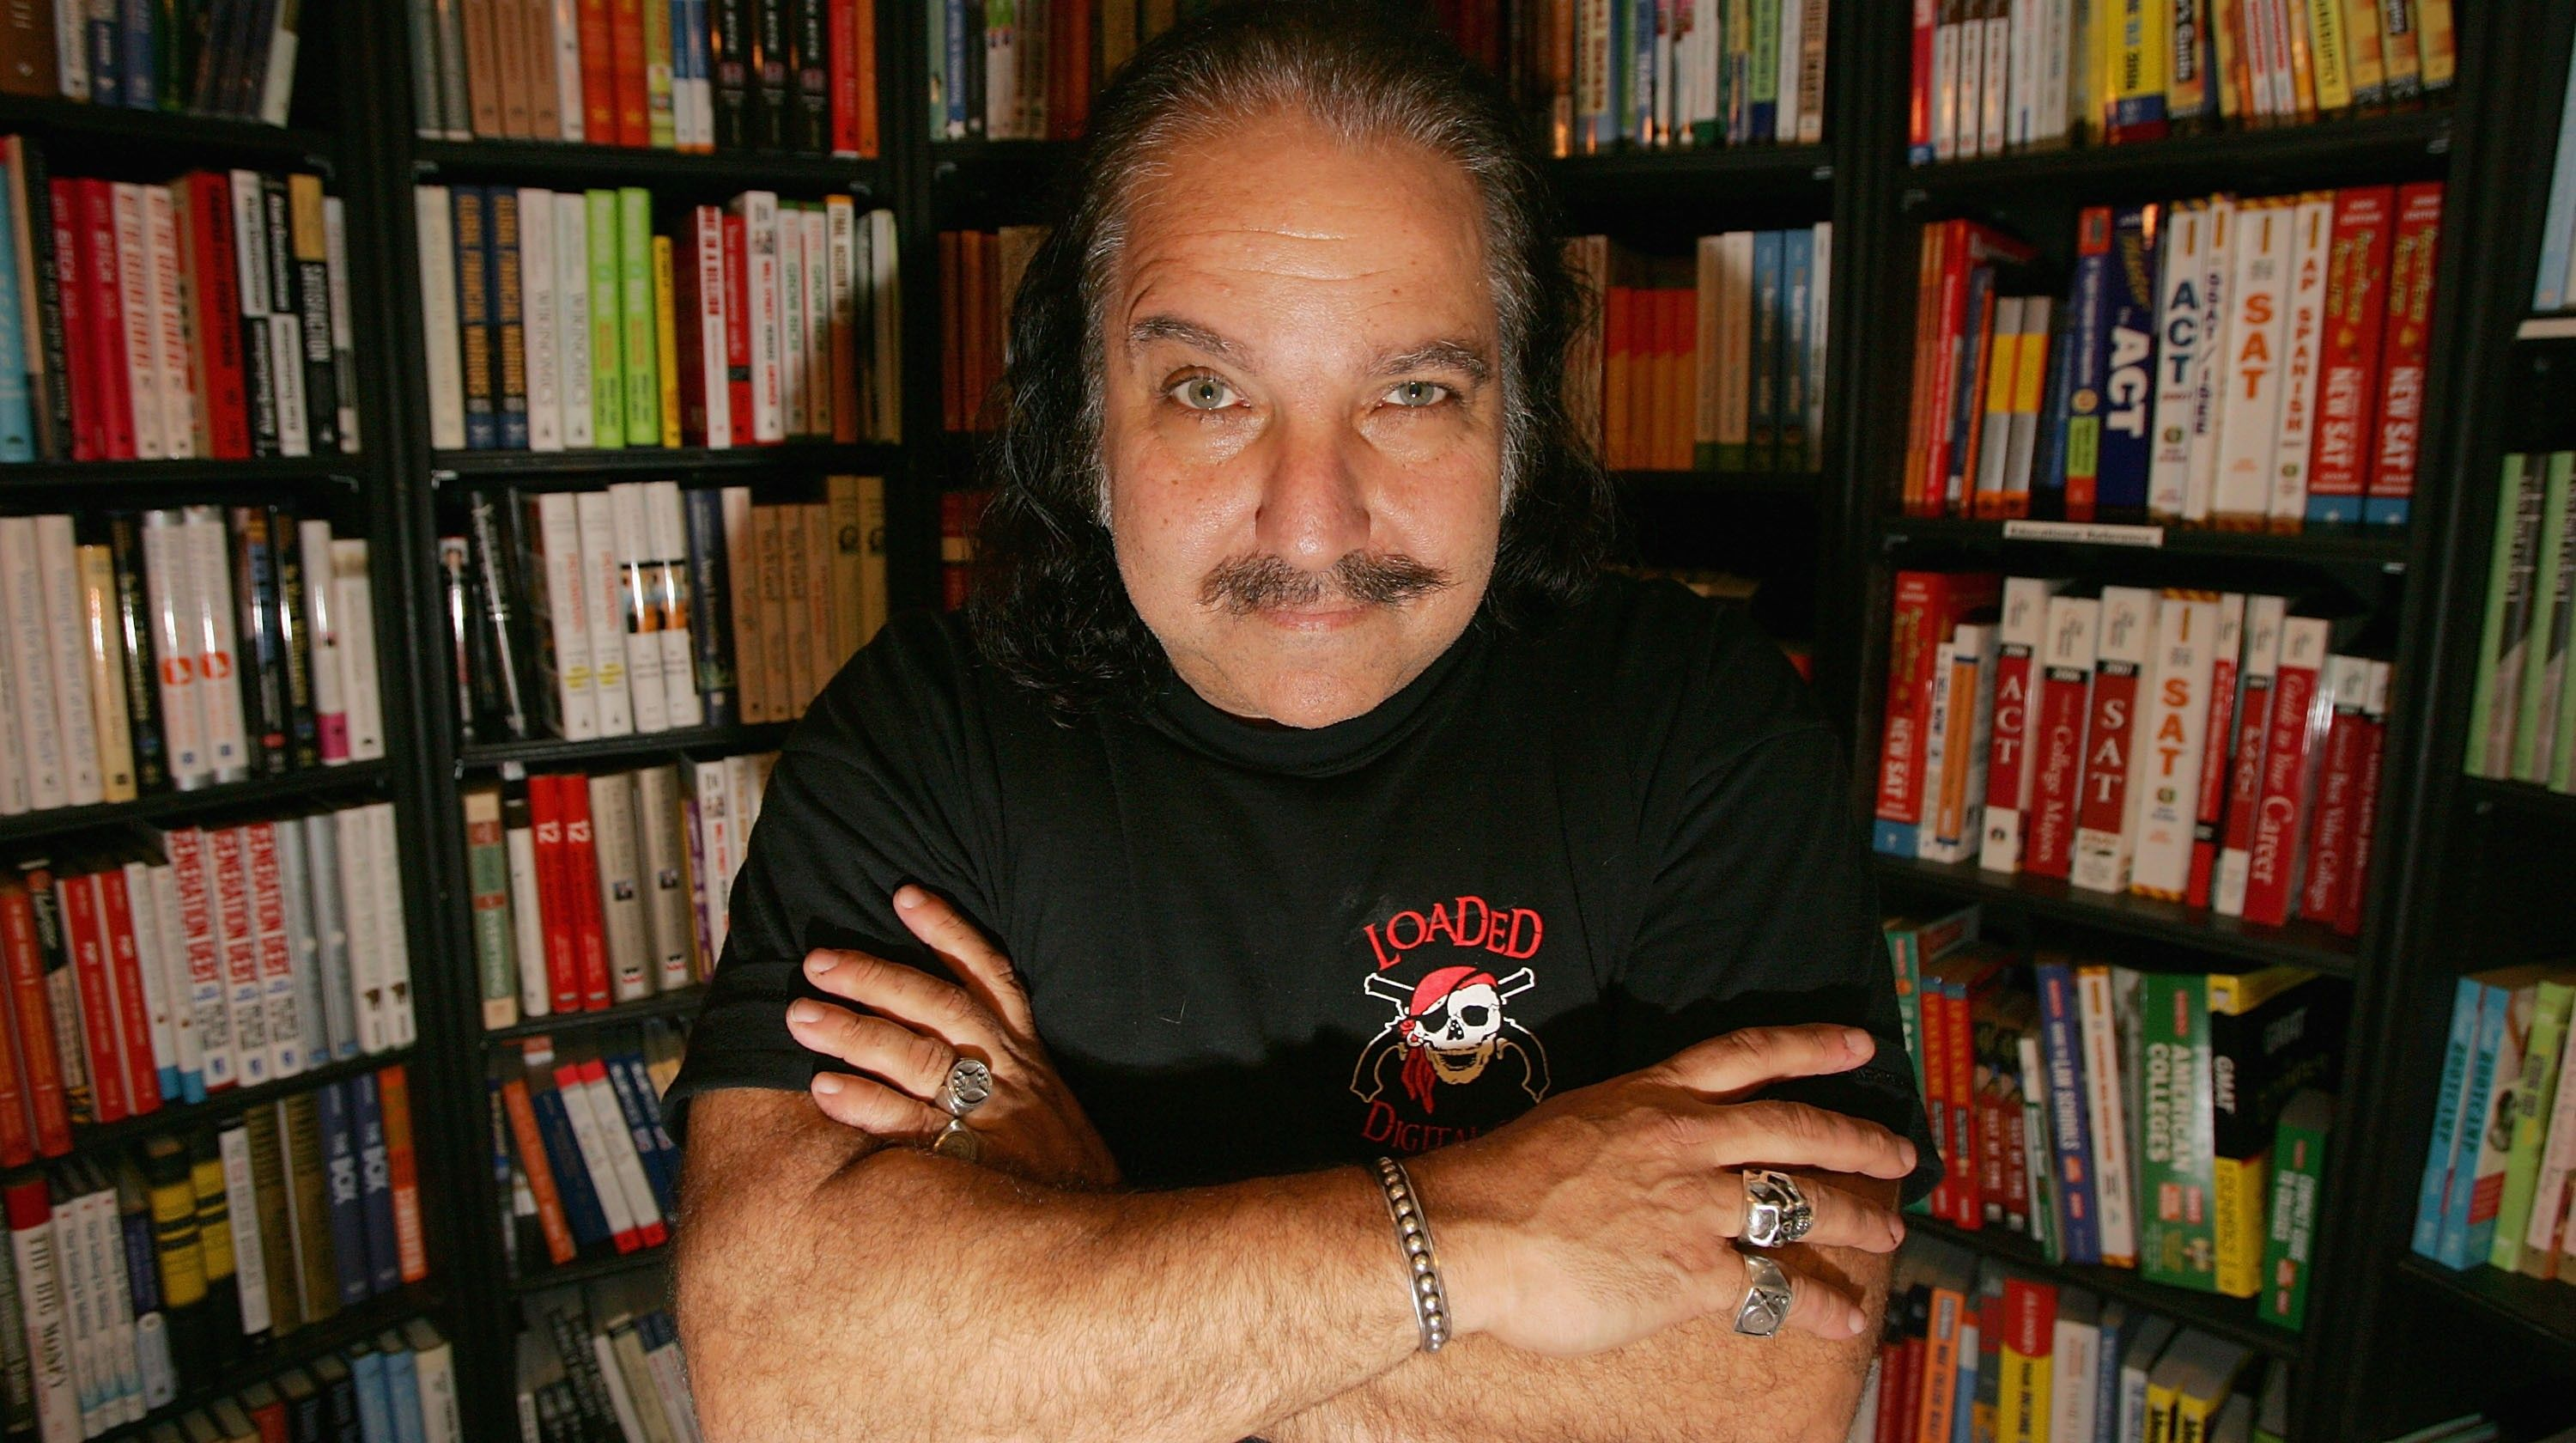 15 Things You Didn't Know About Ron Jeremy